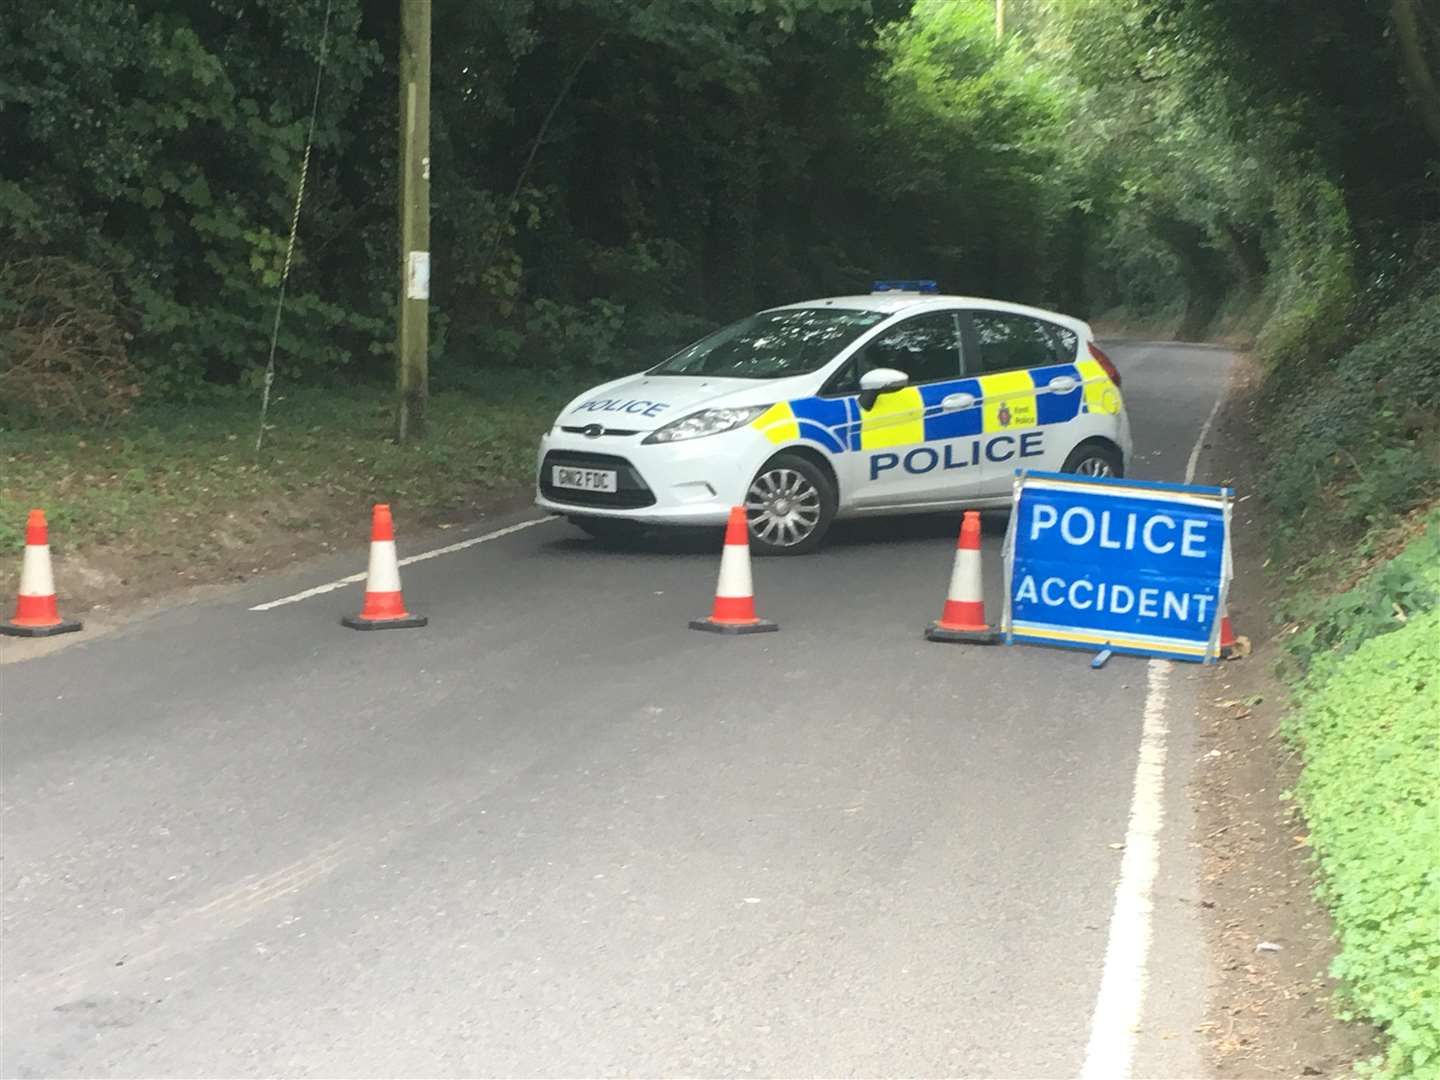 The scene of the crash remains cordoned off